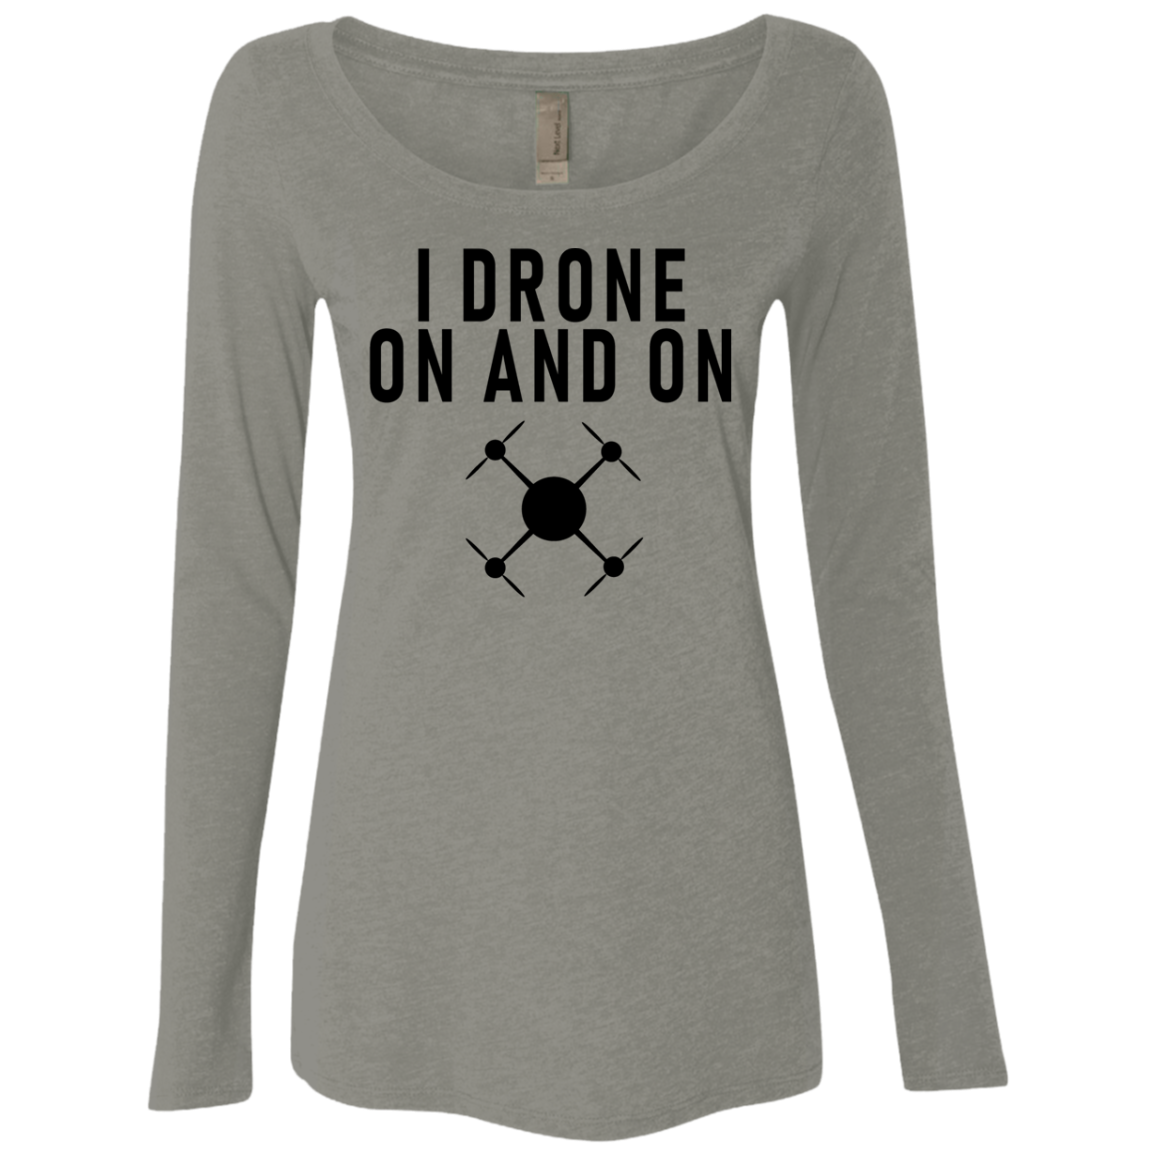 I Drone On And On Women's Long Sleeve Tee